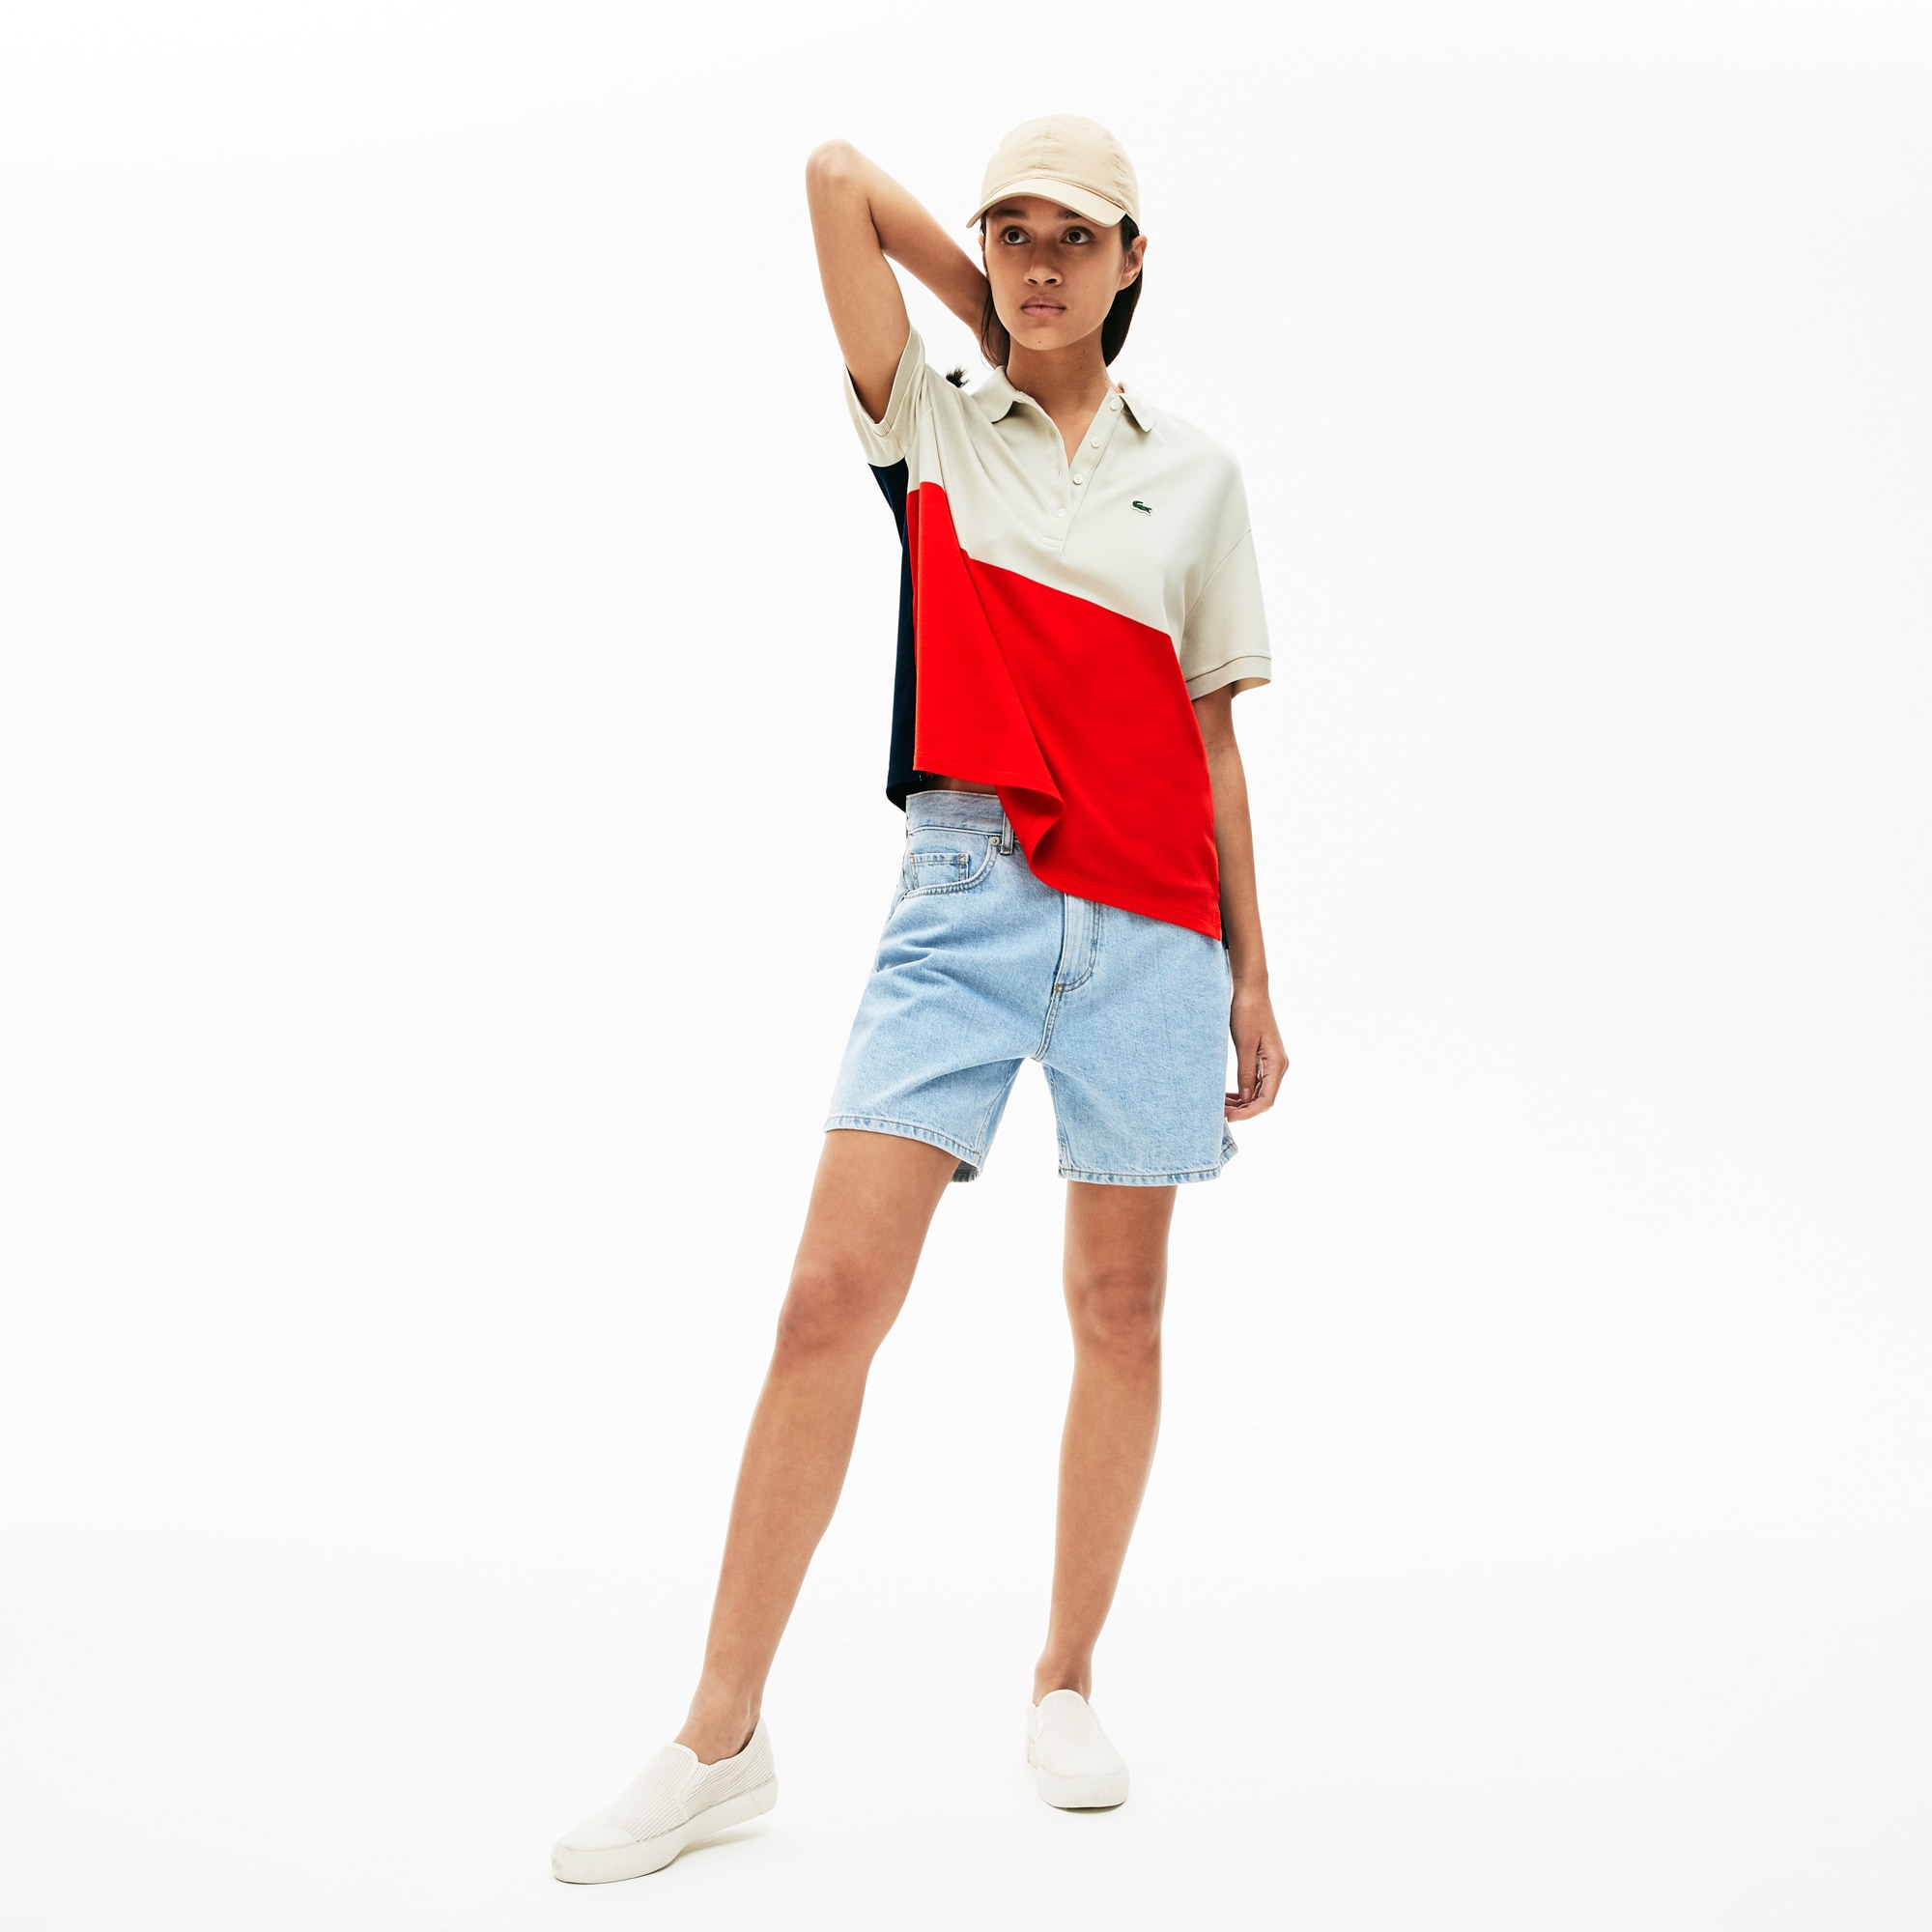 라코스테 우먼 폴로셔츠 (릴렉스 핏) Lacoste Womens Relaxed-Fit Lightweight Color-Block Pique Polo,Red / Beige / Navy Blue